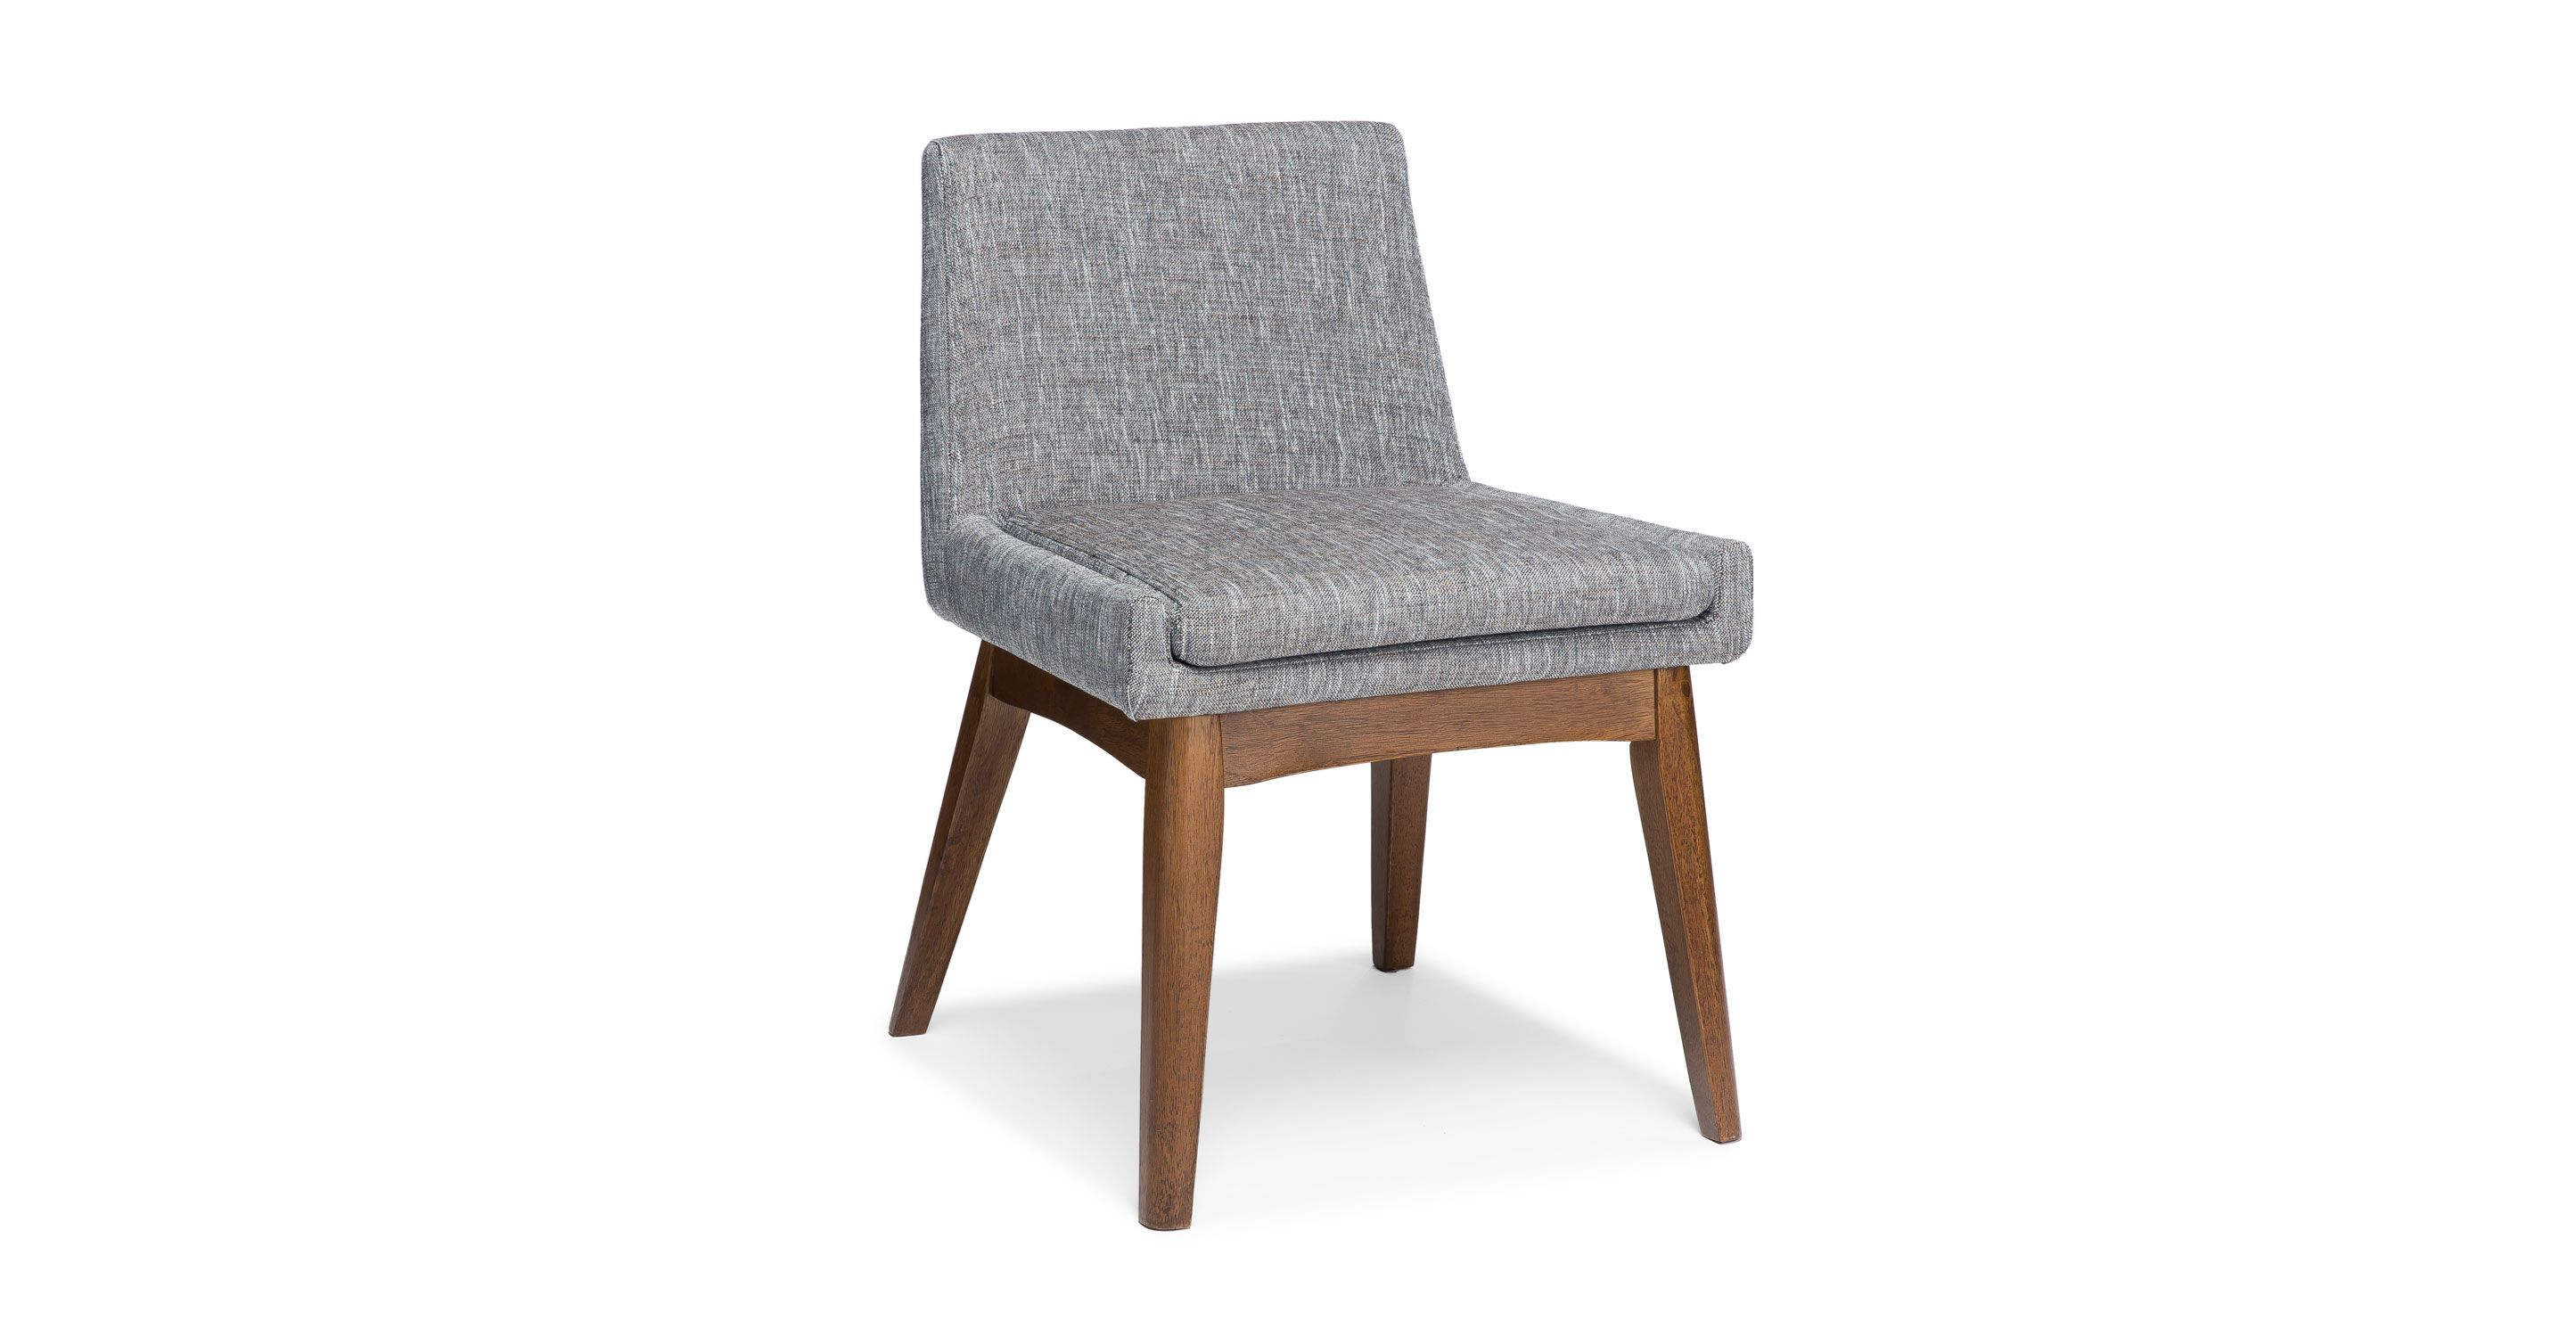 2x Gray Dining Chair in Brown Wood